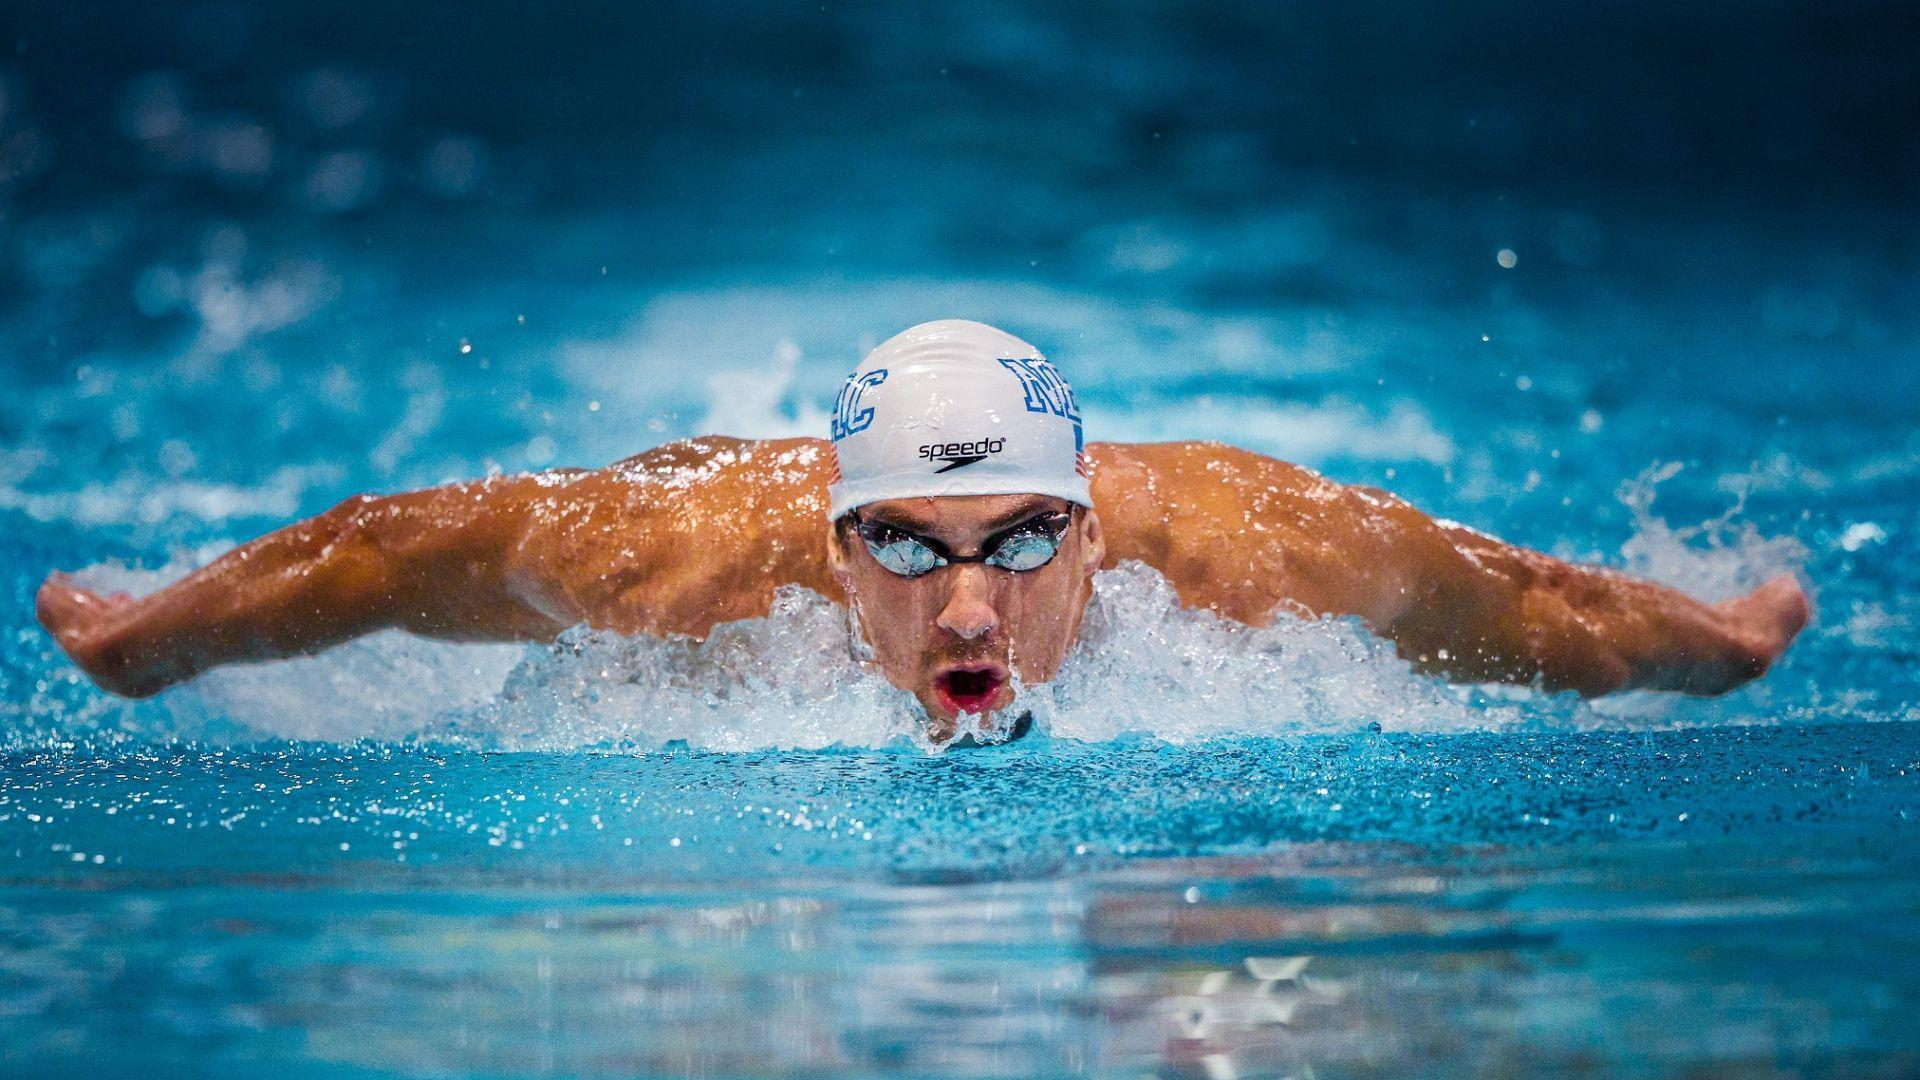 Download Wallpapers 1920x1080 Michael phelps, Swimmer, Olympian